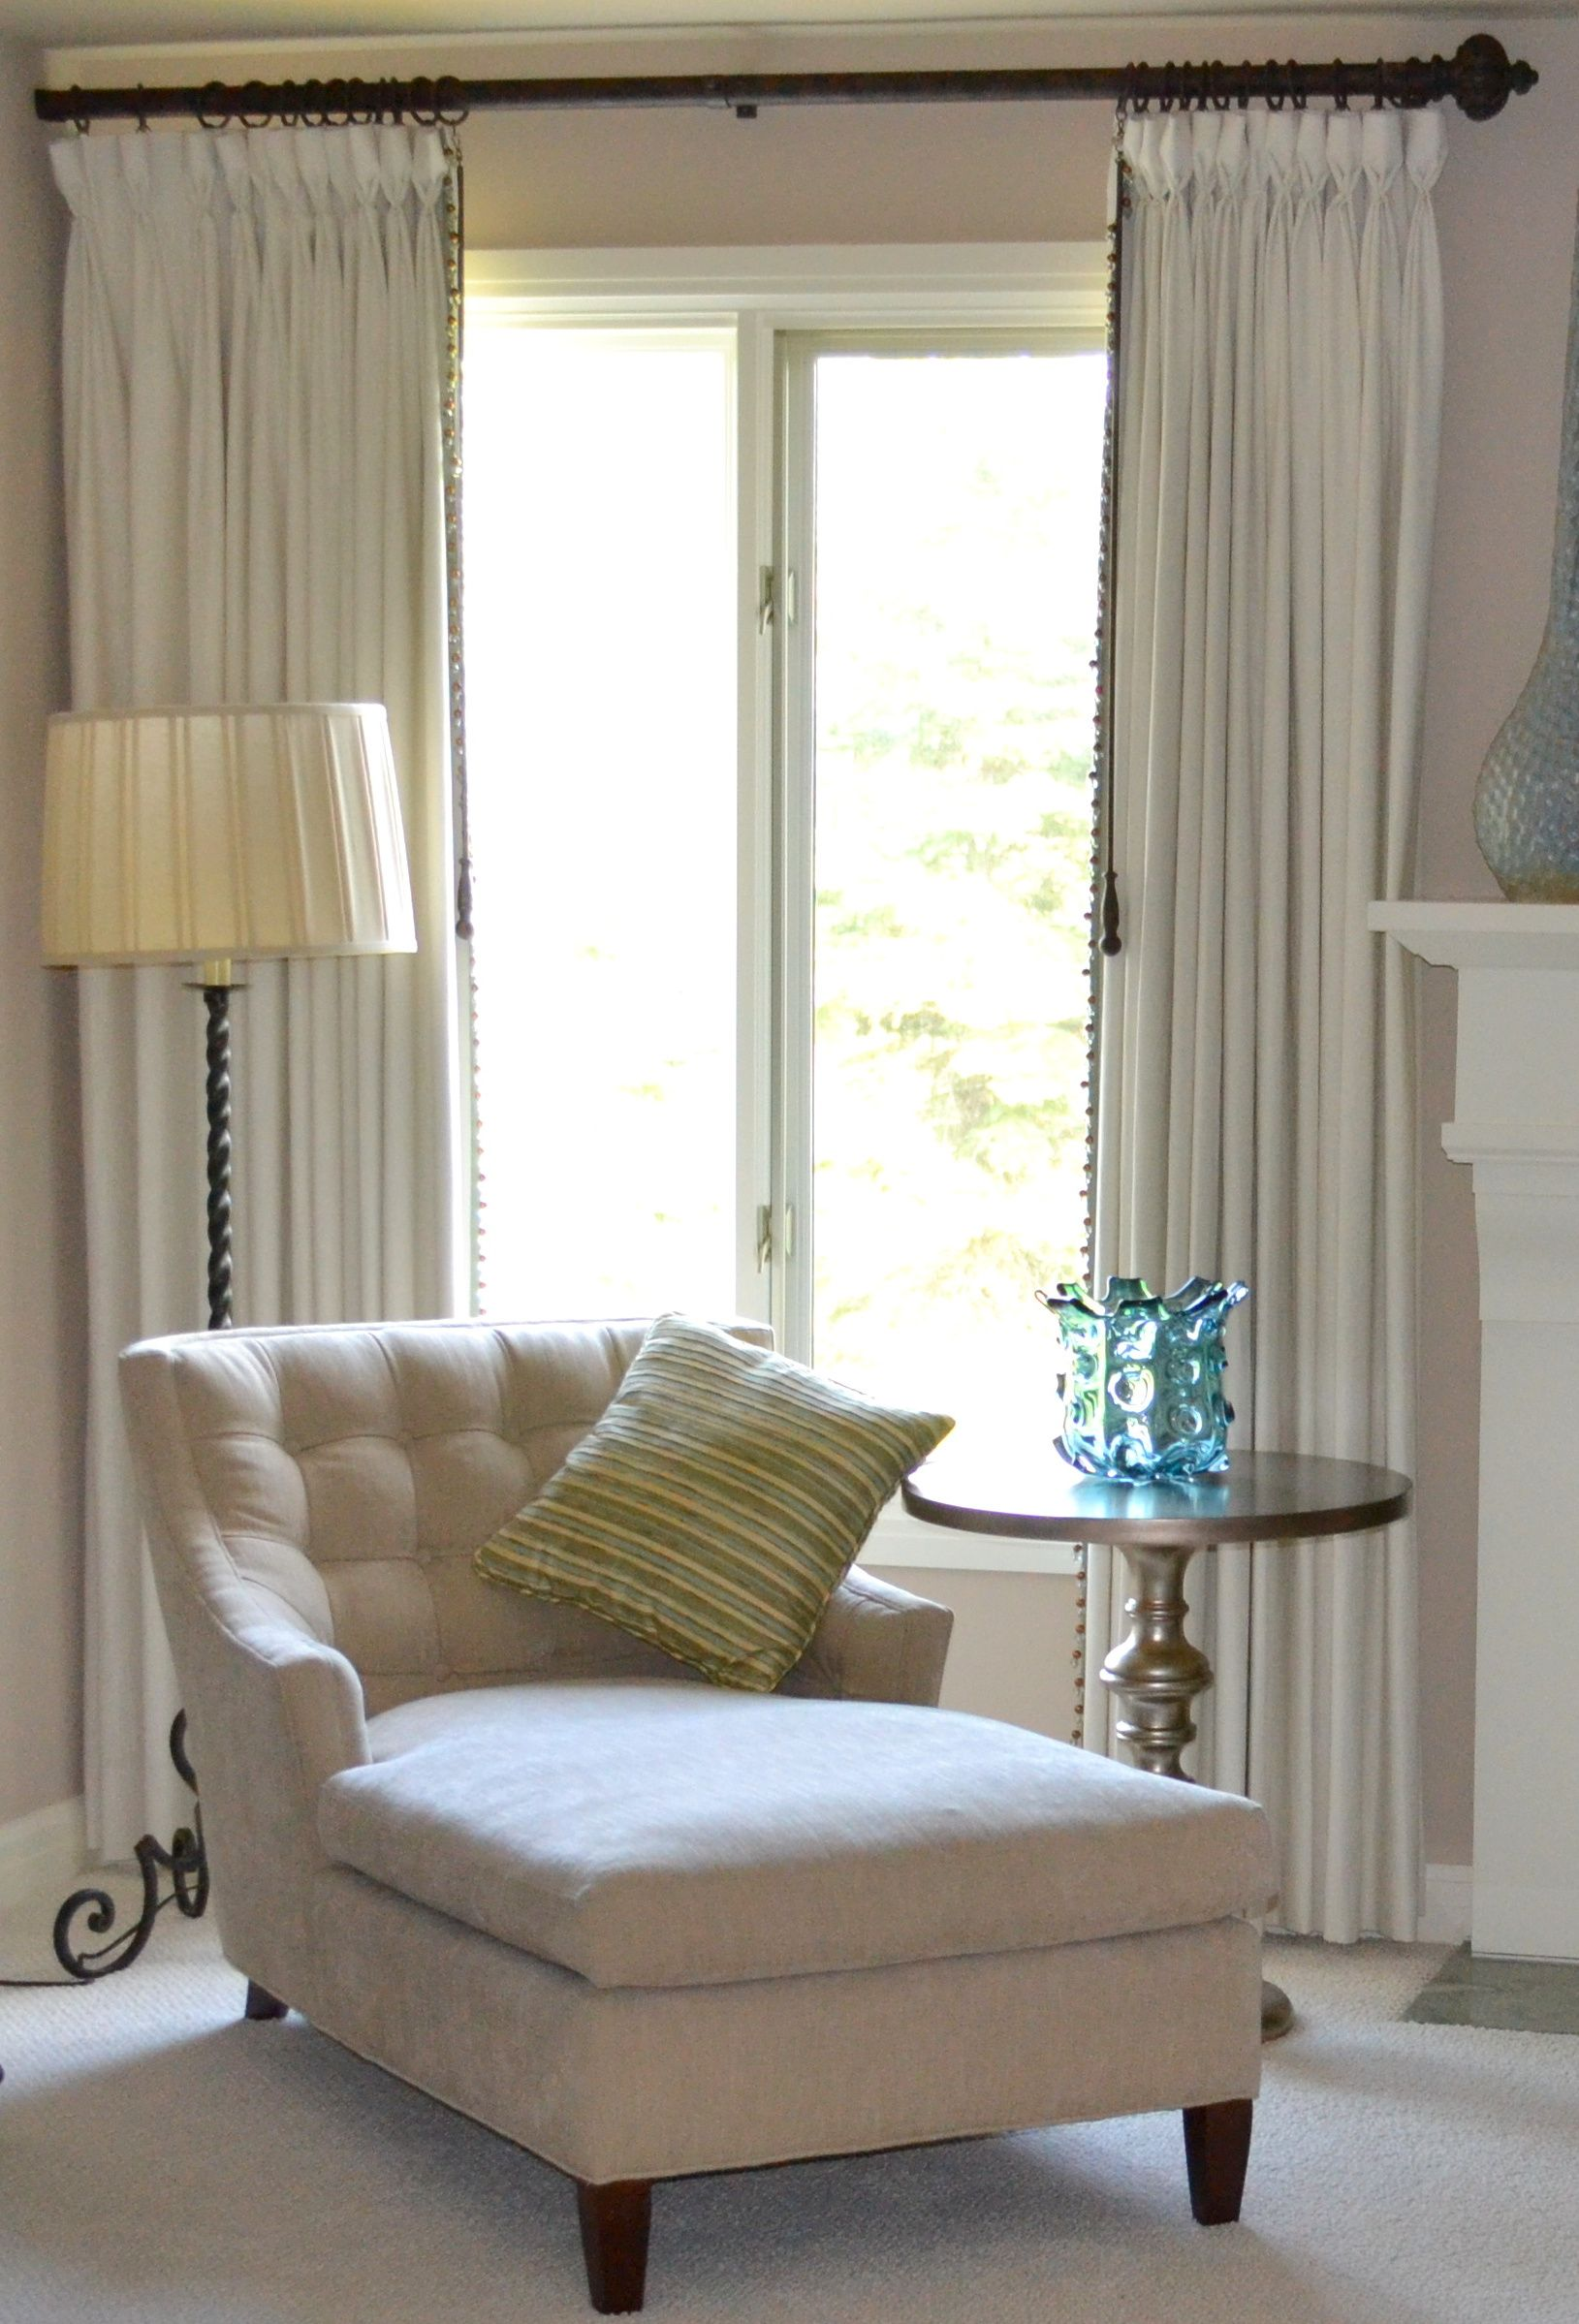 chaise chair for bedroom where to buy cushions master in front of bay window and